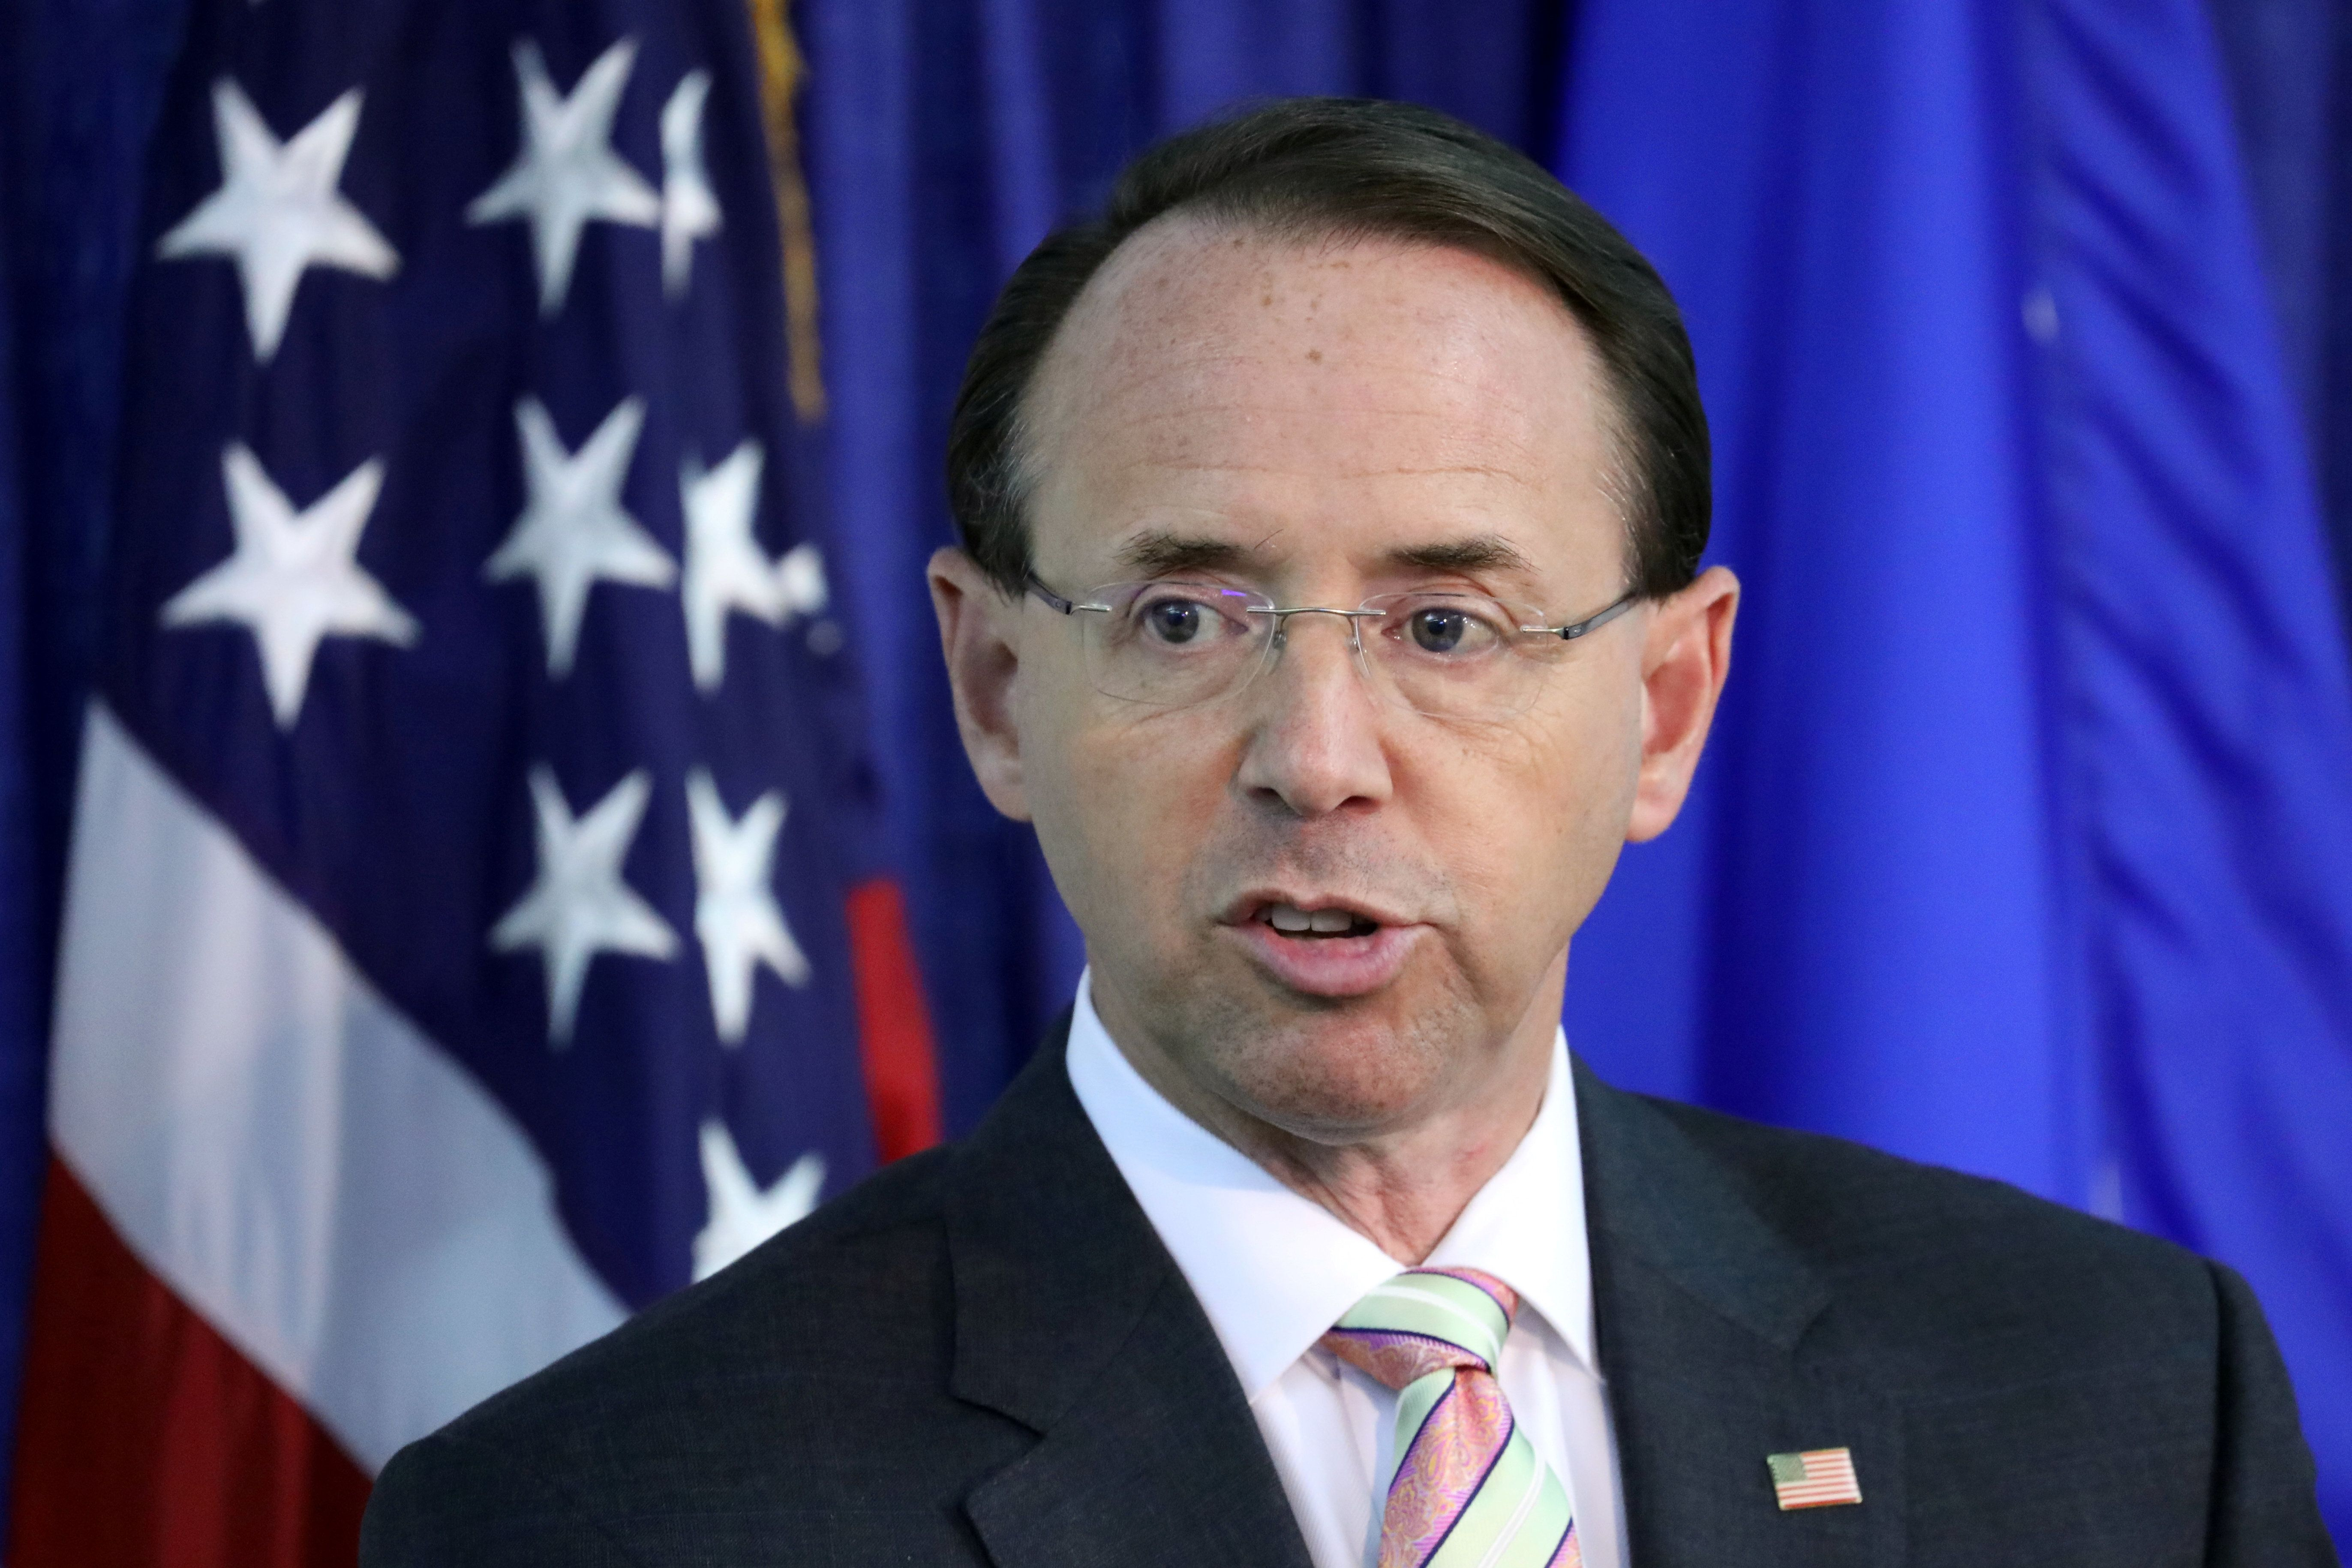 Report: Rod Rosenstein Offers 'Forceful Defense' Of 'Appropriate' Russia Probe